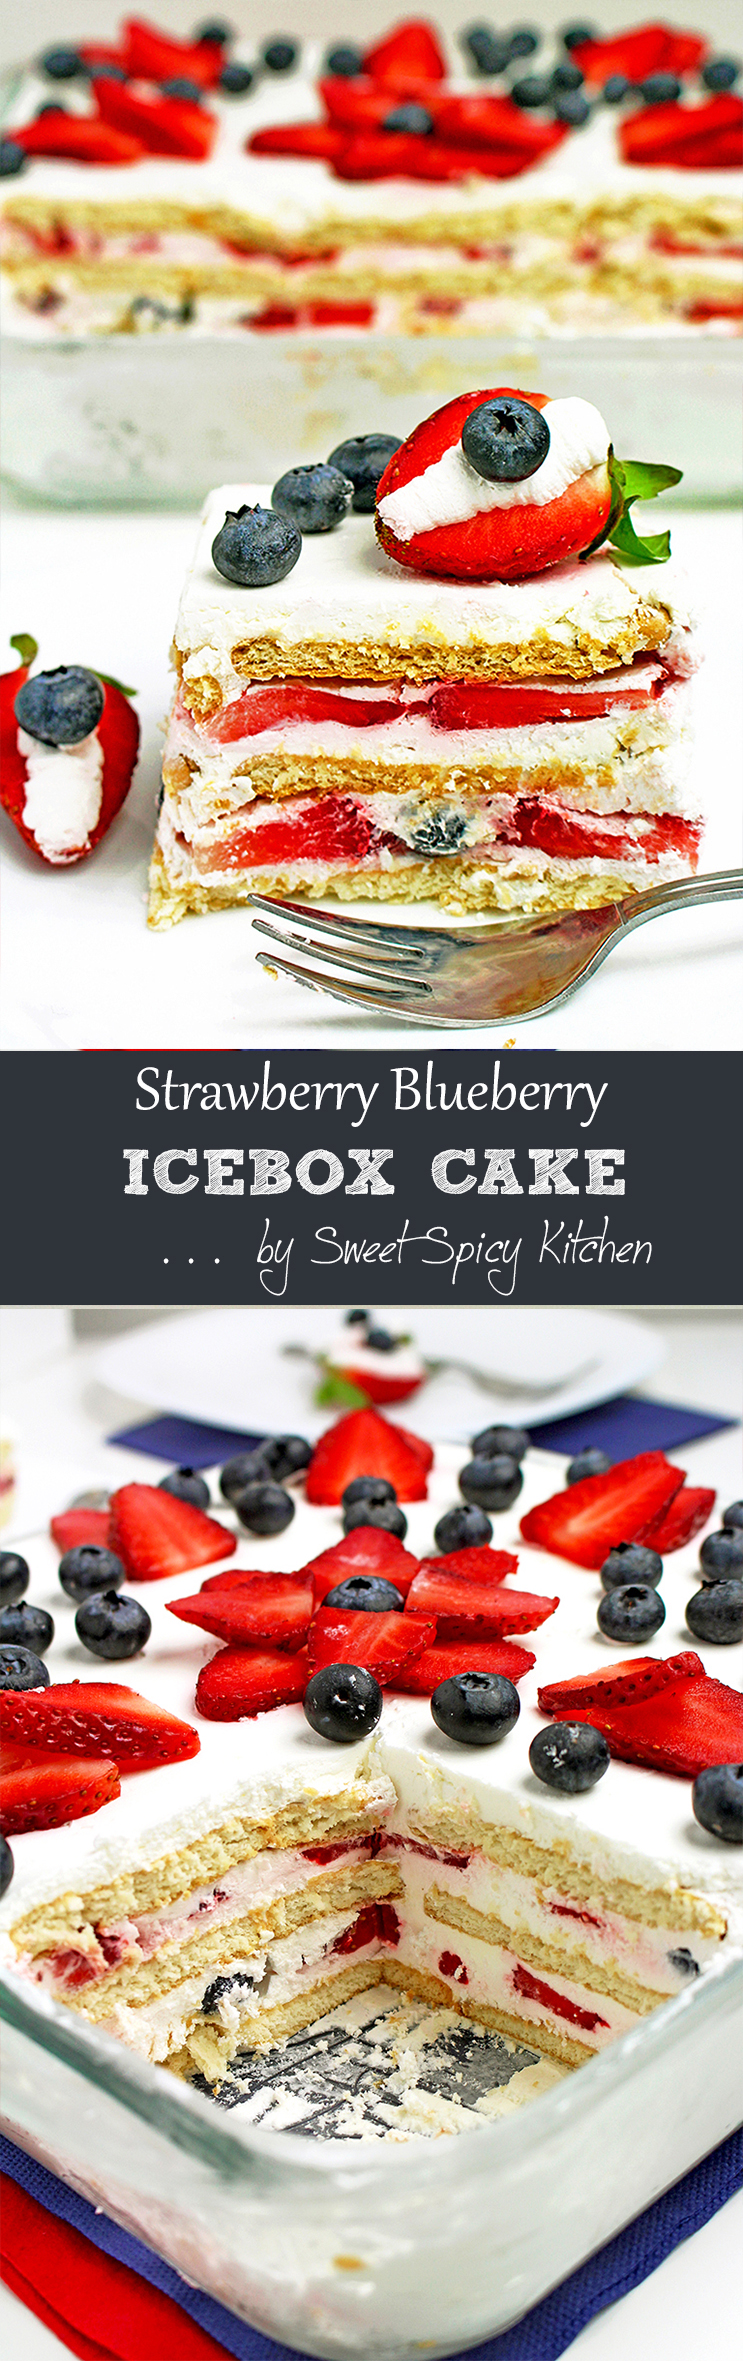 Untitled-28 Strawberry Blueberry Icebox Cake